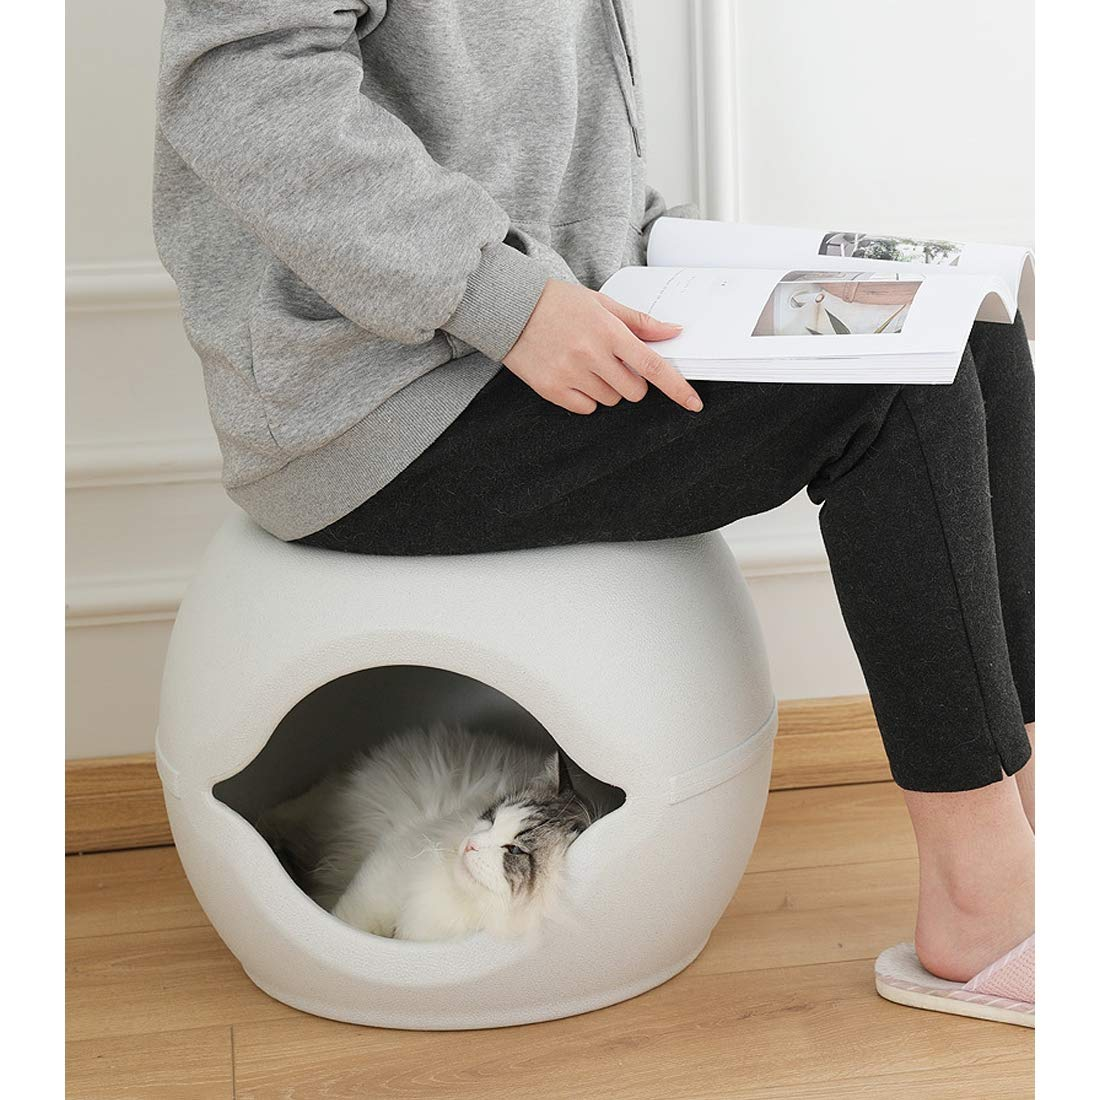 A Pet Kennel Eggshell Creative nest Moisture Proof Heat Resistant Resistant to Catch Simple Safety Can be Used as a Stool Durable Made of PP Resin,A